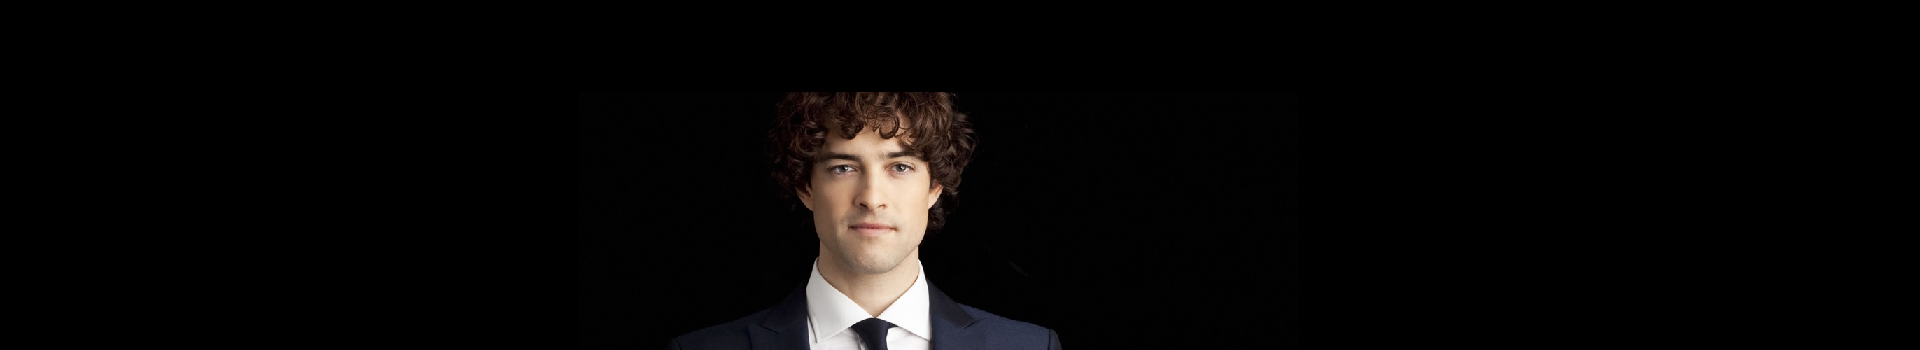 Christmas with Lee Mead banner image